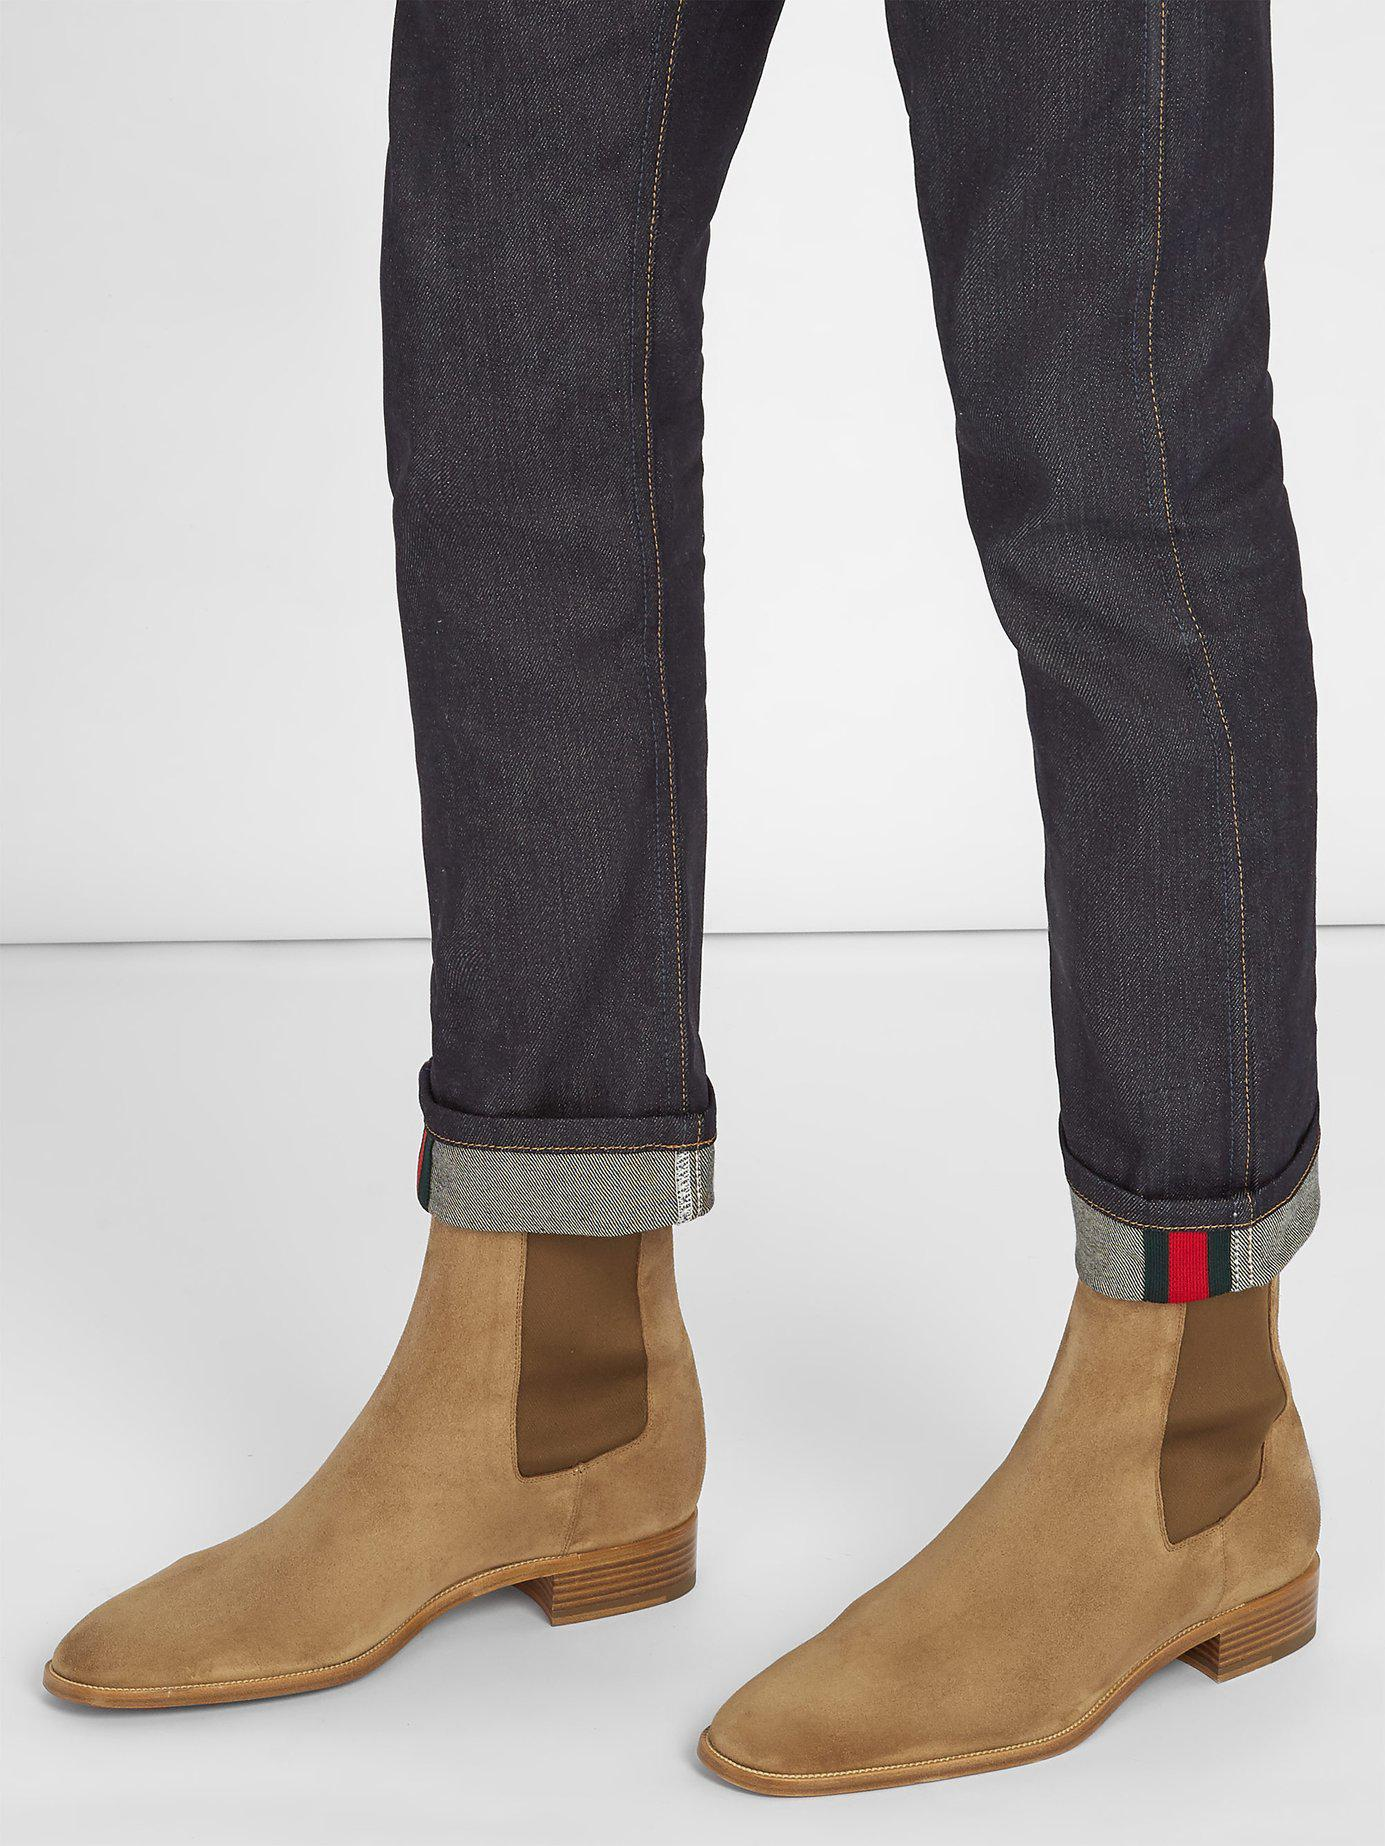 50c7c4fb8657 Lyst - Christian Louboutin Samson Suede Chelsea Boots in Natural for Men